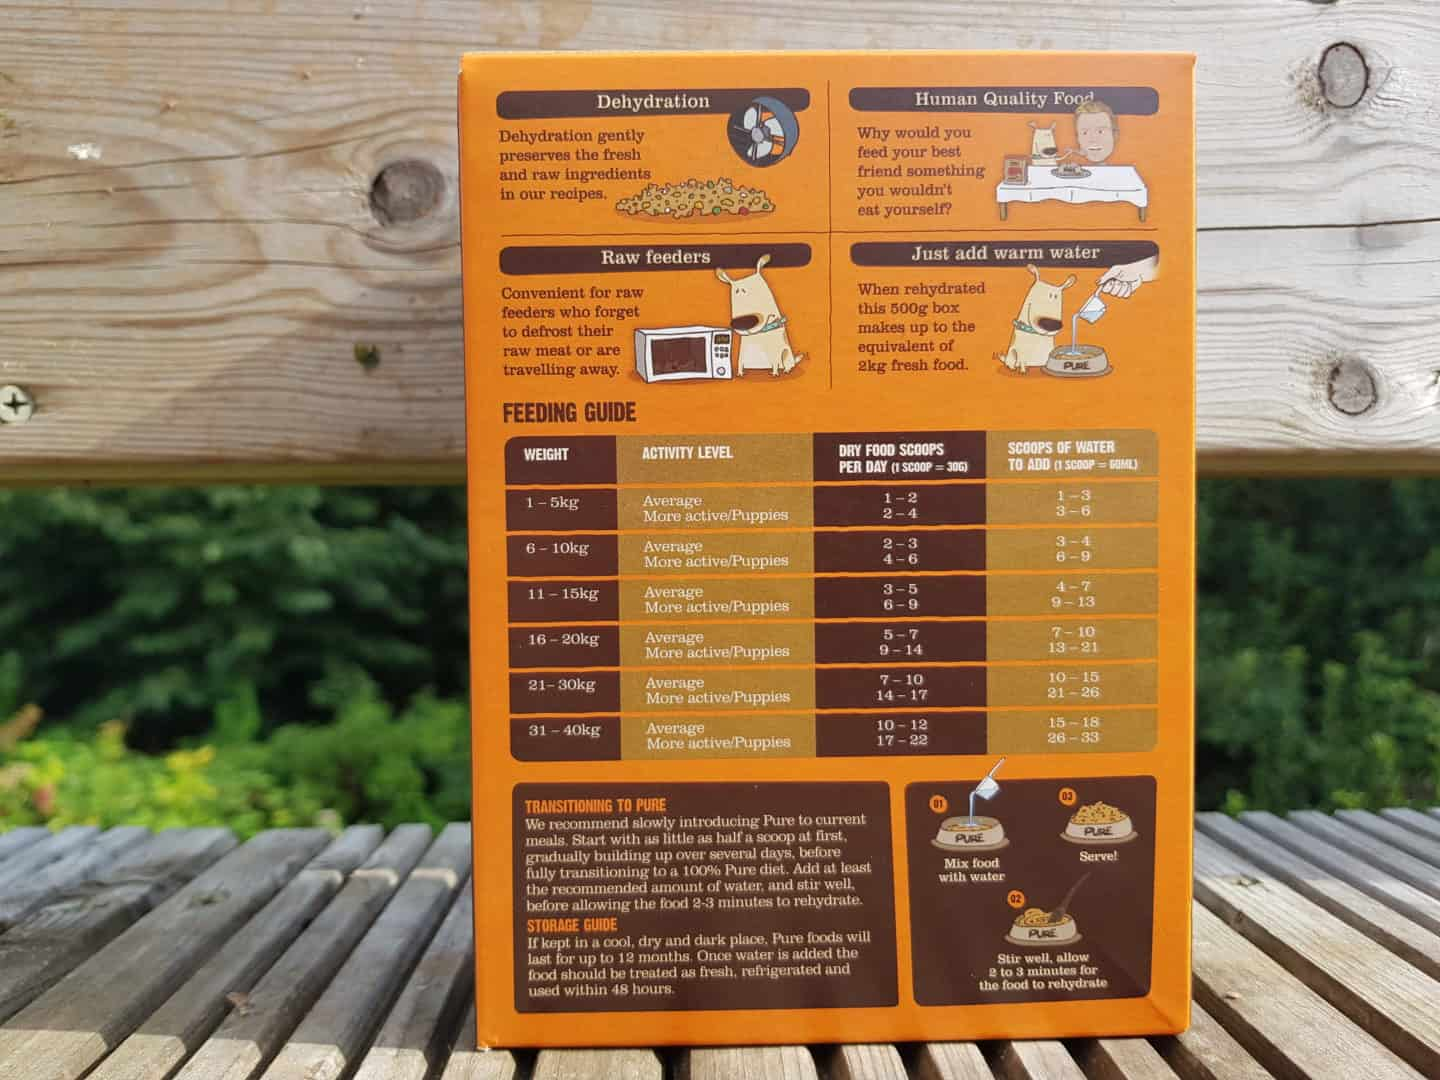 Nutritional information on the back of an orange box of Pure Dog Food